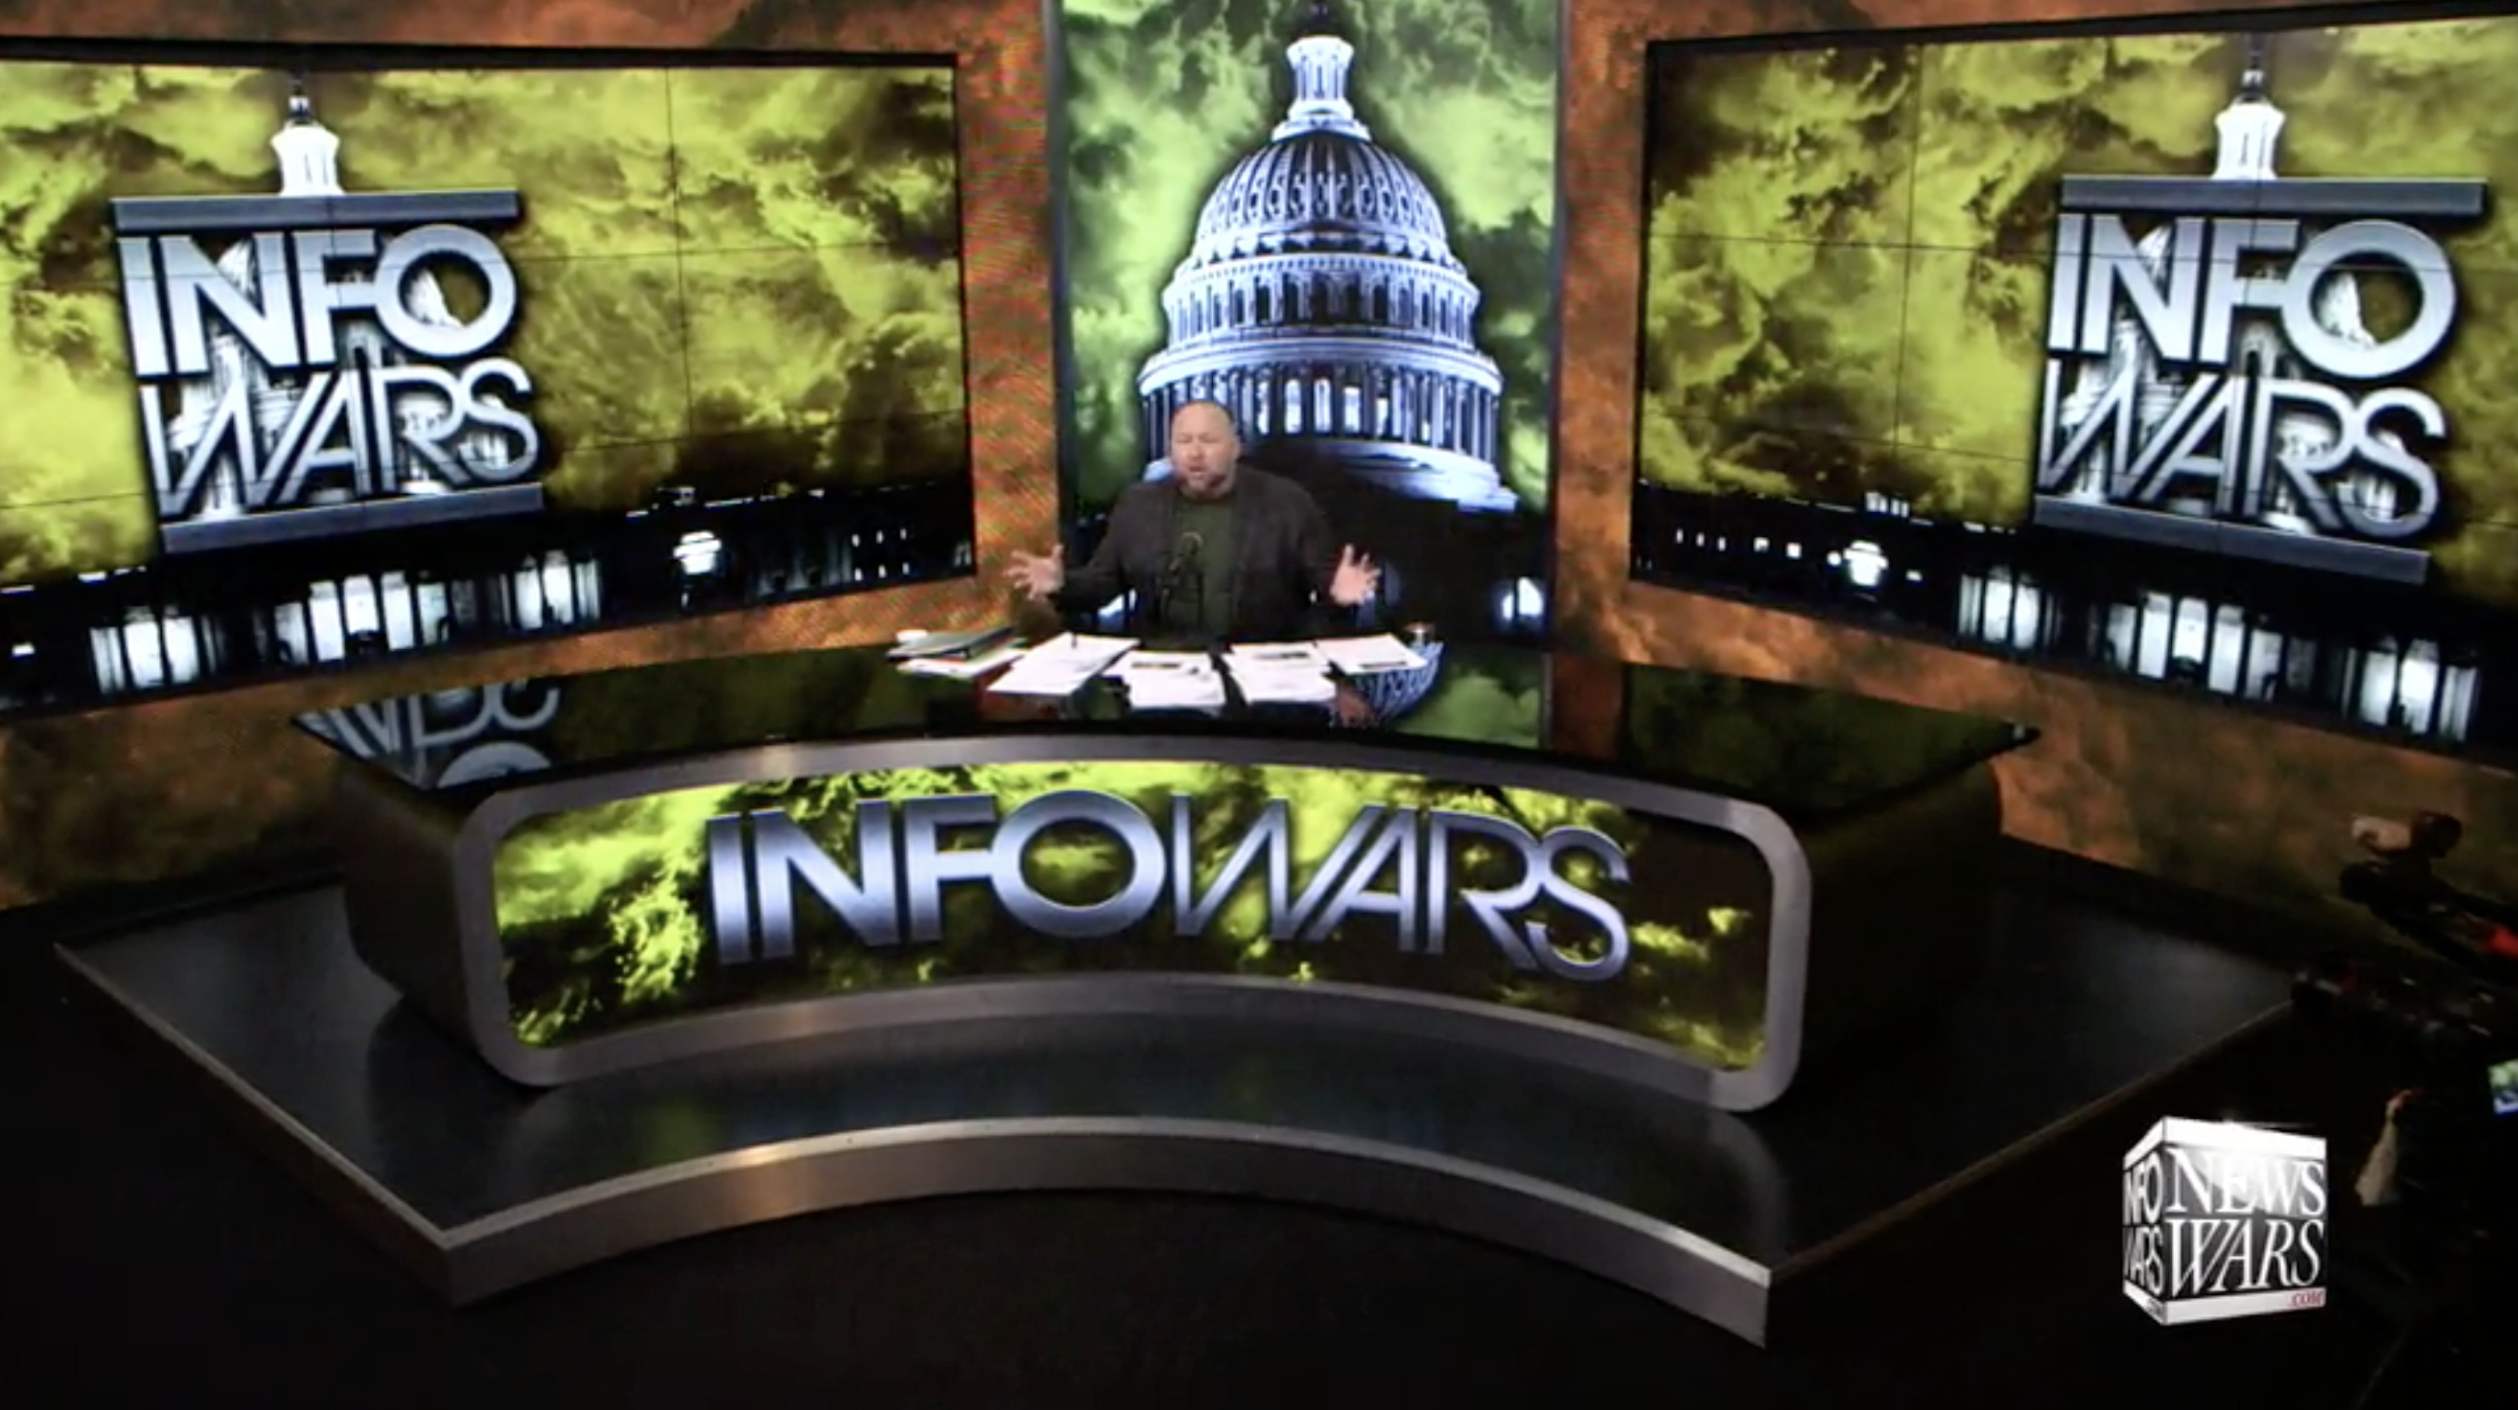 Alex Jones Infowars Studio The Resistance Video EXZM Zack Mount January 19th 2021 1